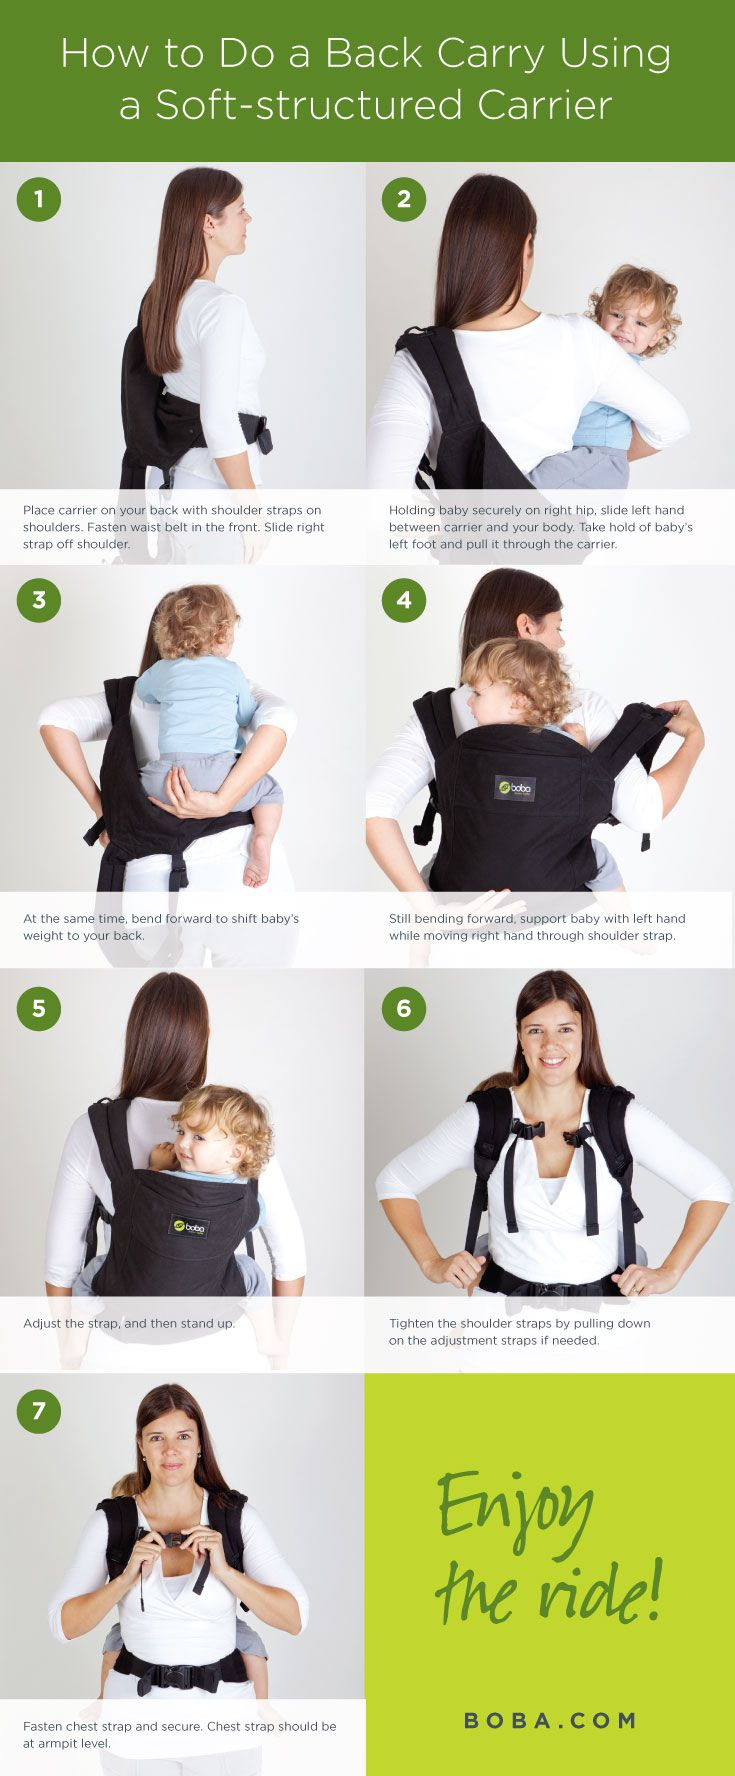 Boba back carry #babywearing #babycarrier #freedomtogether -- my newest favouritest carrier ever! Still carrying A on the front, but will switch to the back soon! Wish I had this carrier ALL ALONG! From birth to 45 lbs!